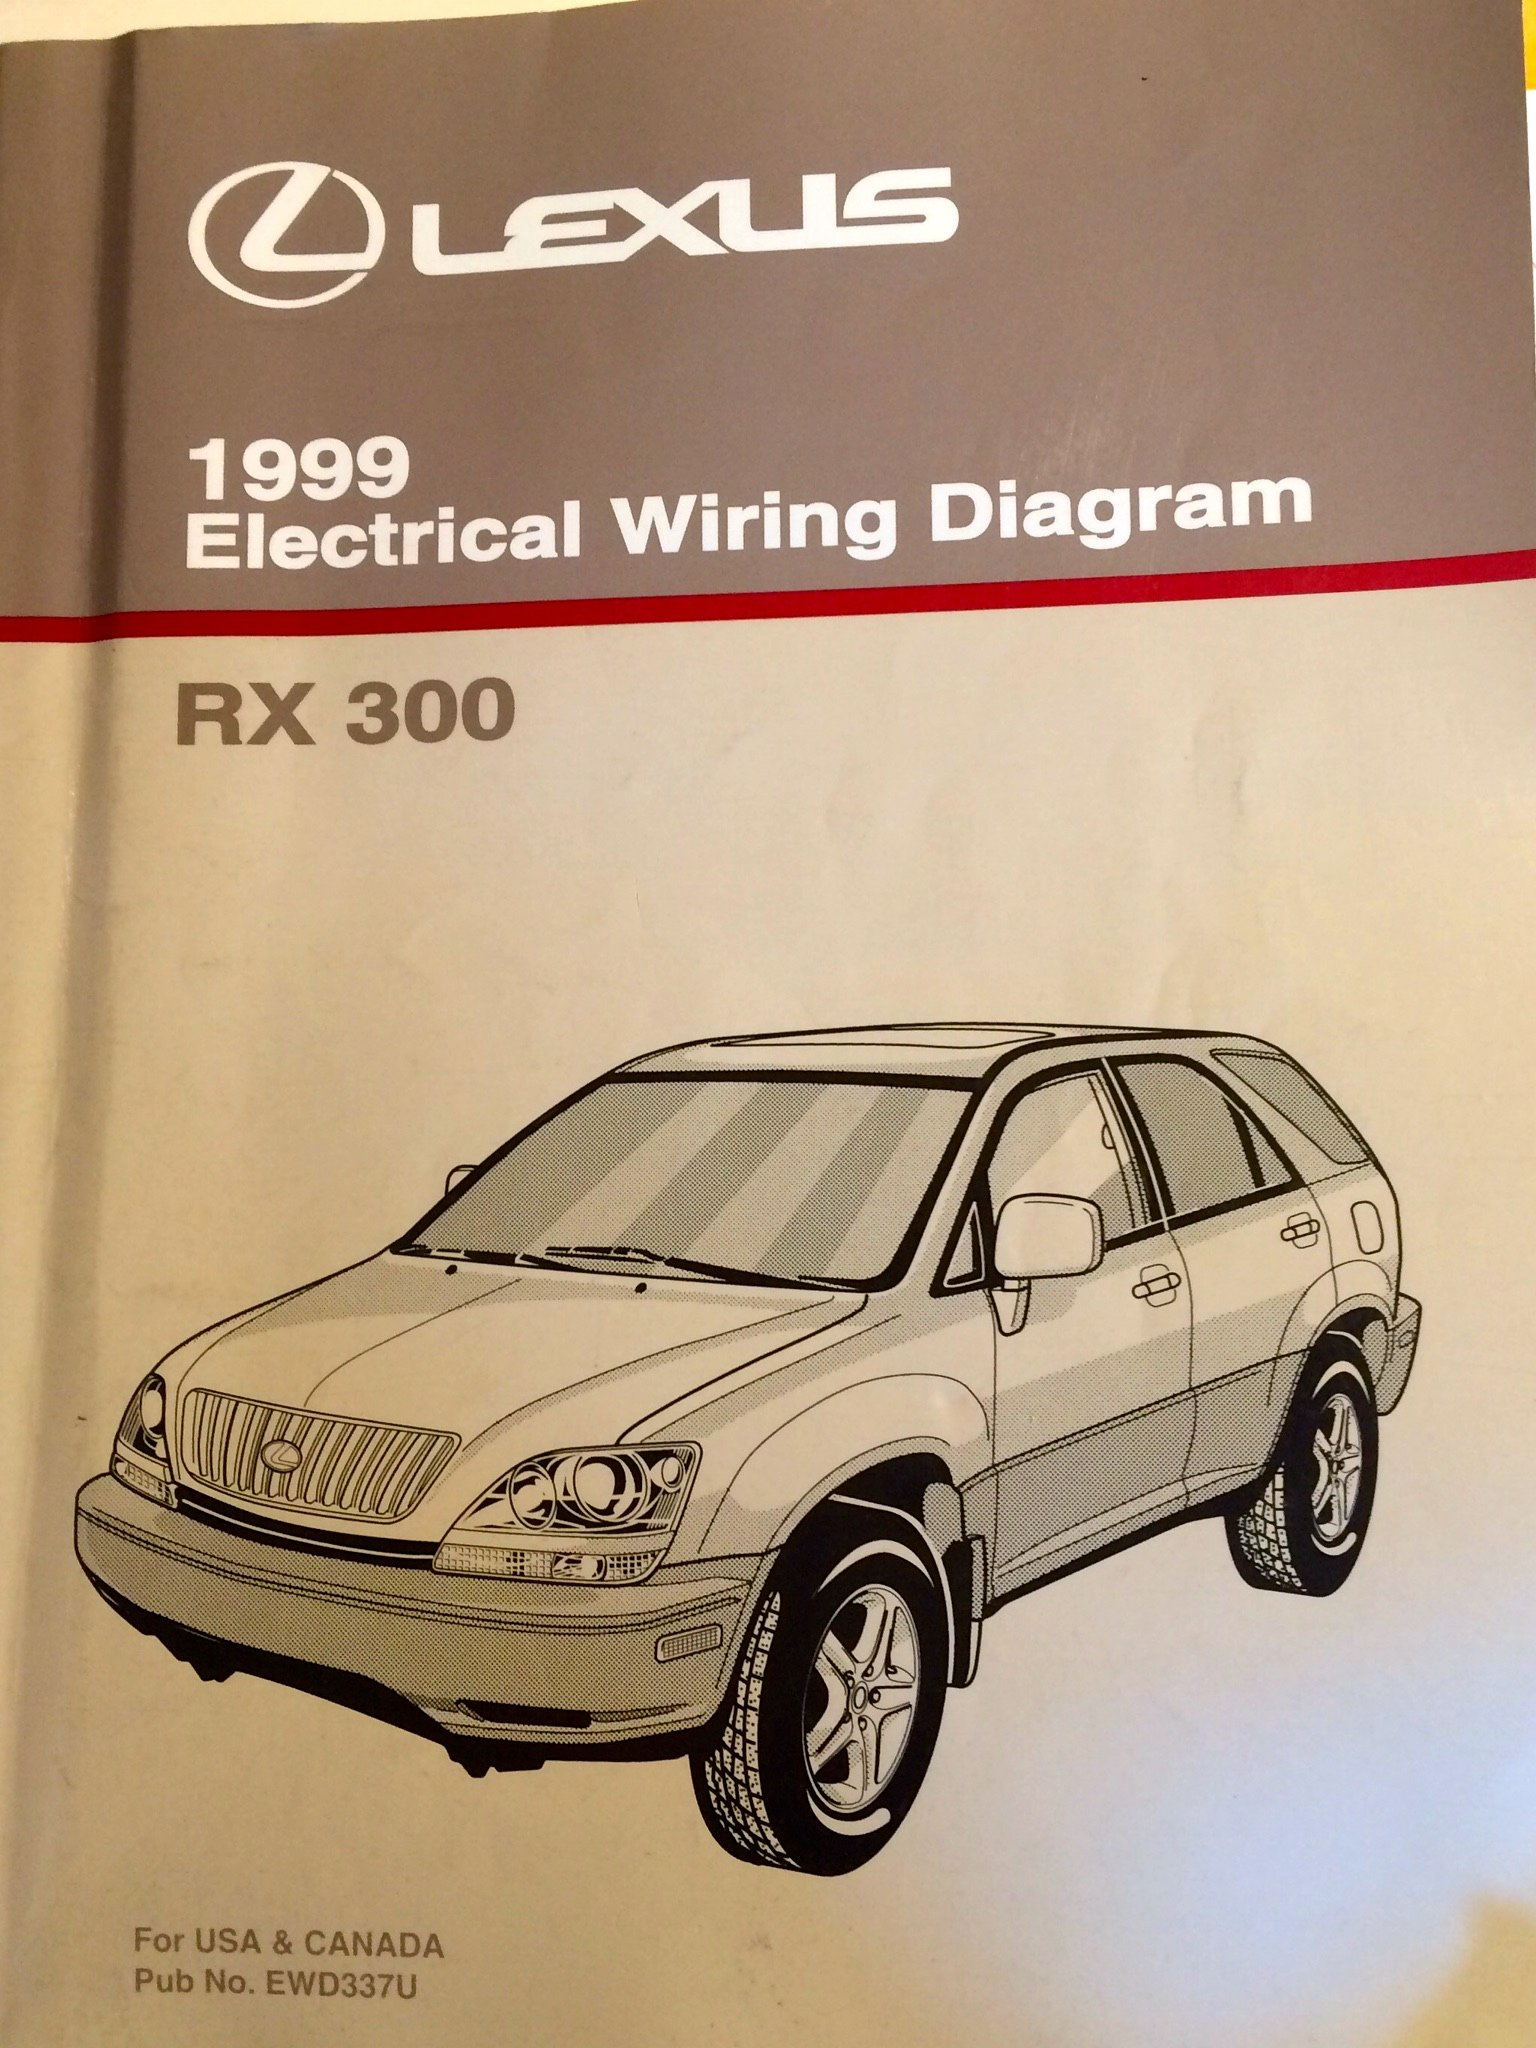 1999 Lexus Rx 300 Electrical Wiring Diagram Mcu10 15 Series